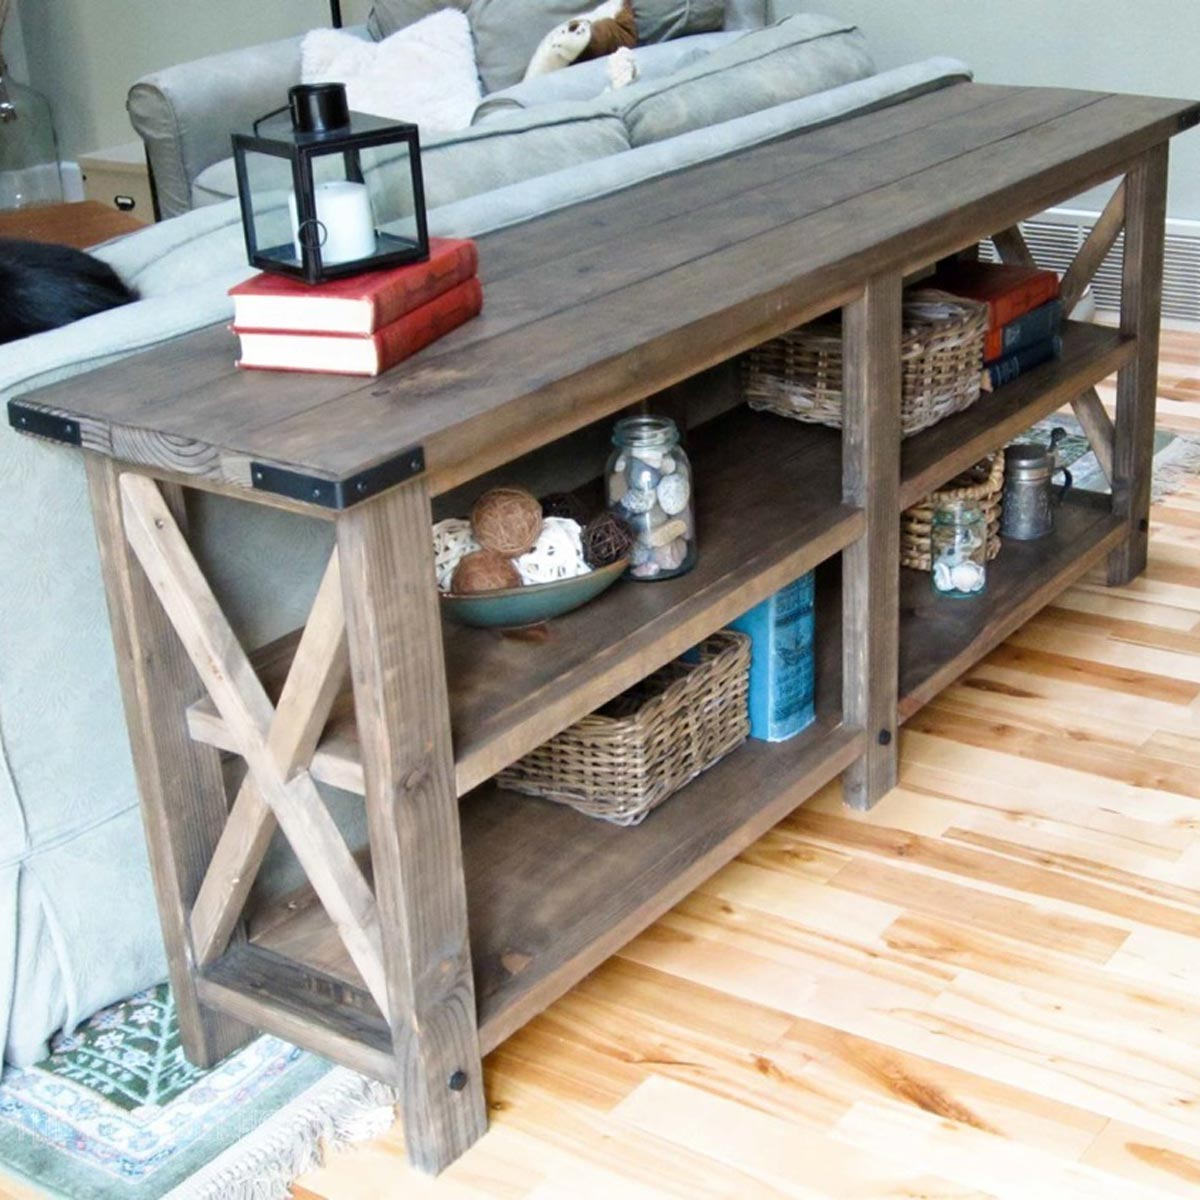 incredible diy end tables simple table ideas the family xendtable rustic behind couch standard dining room size mission style coffee with drawers nightstand blue base lamps cherry